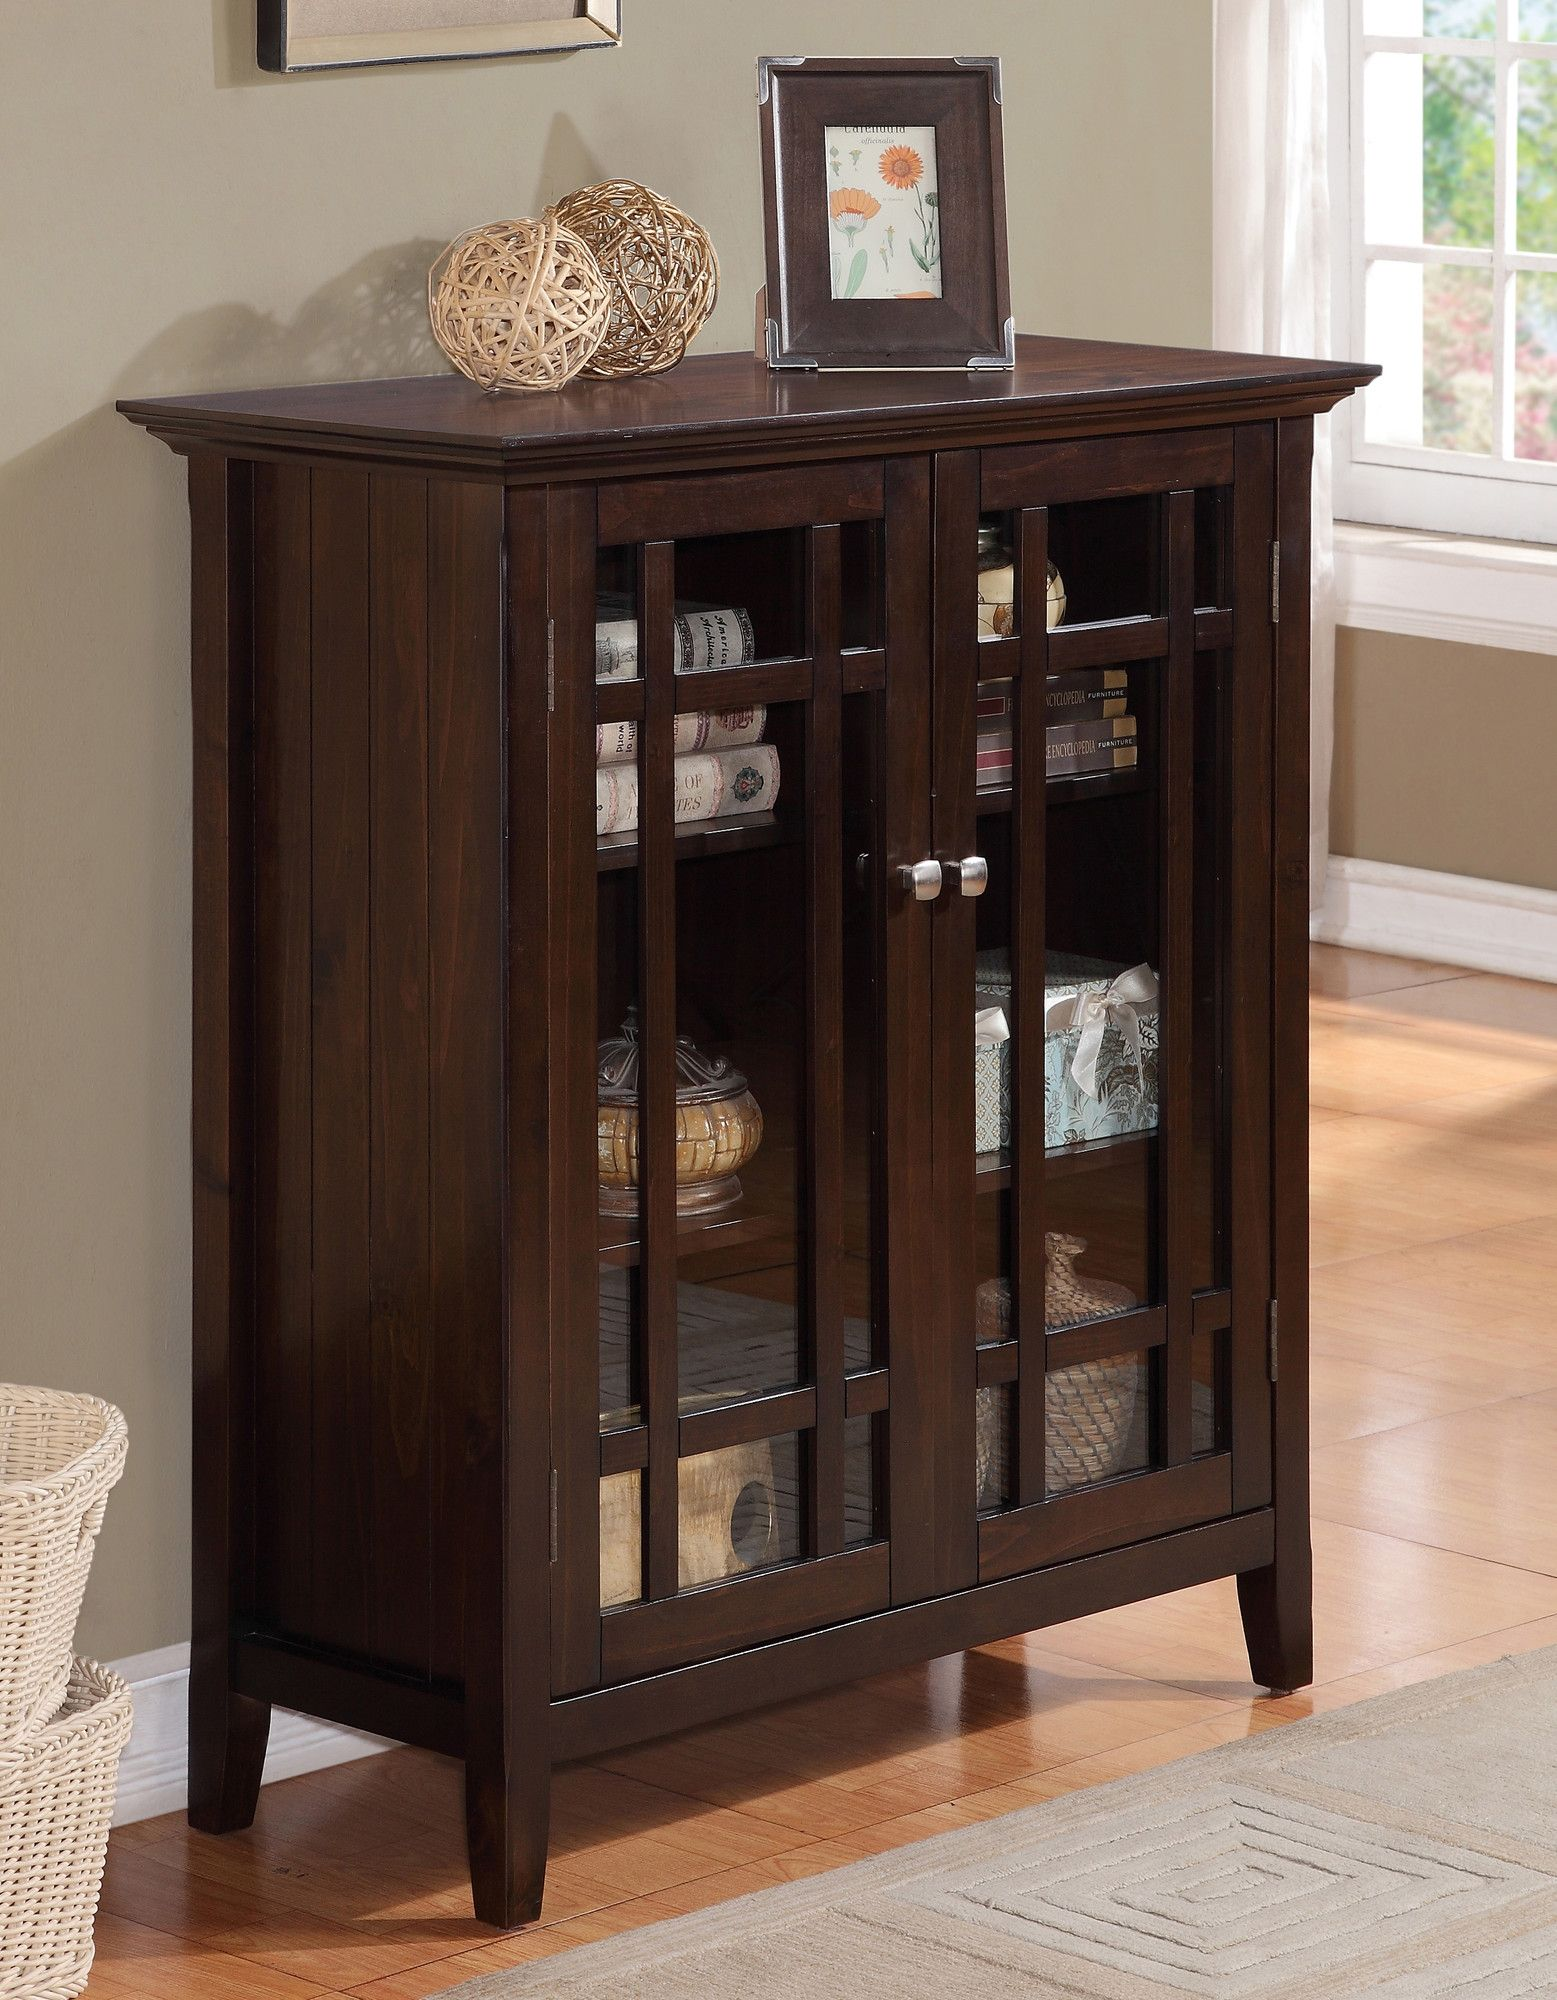 Simpli Home Bedford Storage Media Cabinet and Buffet & Reviews